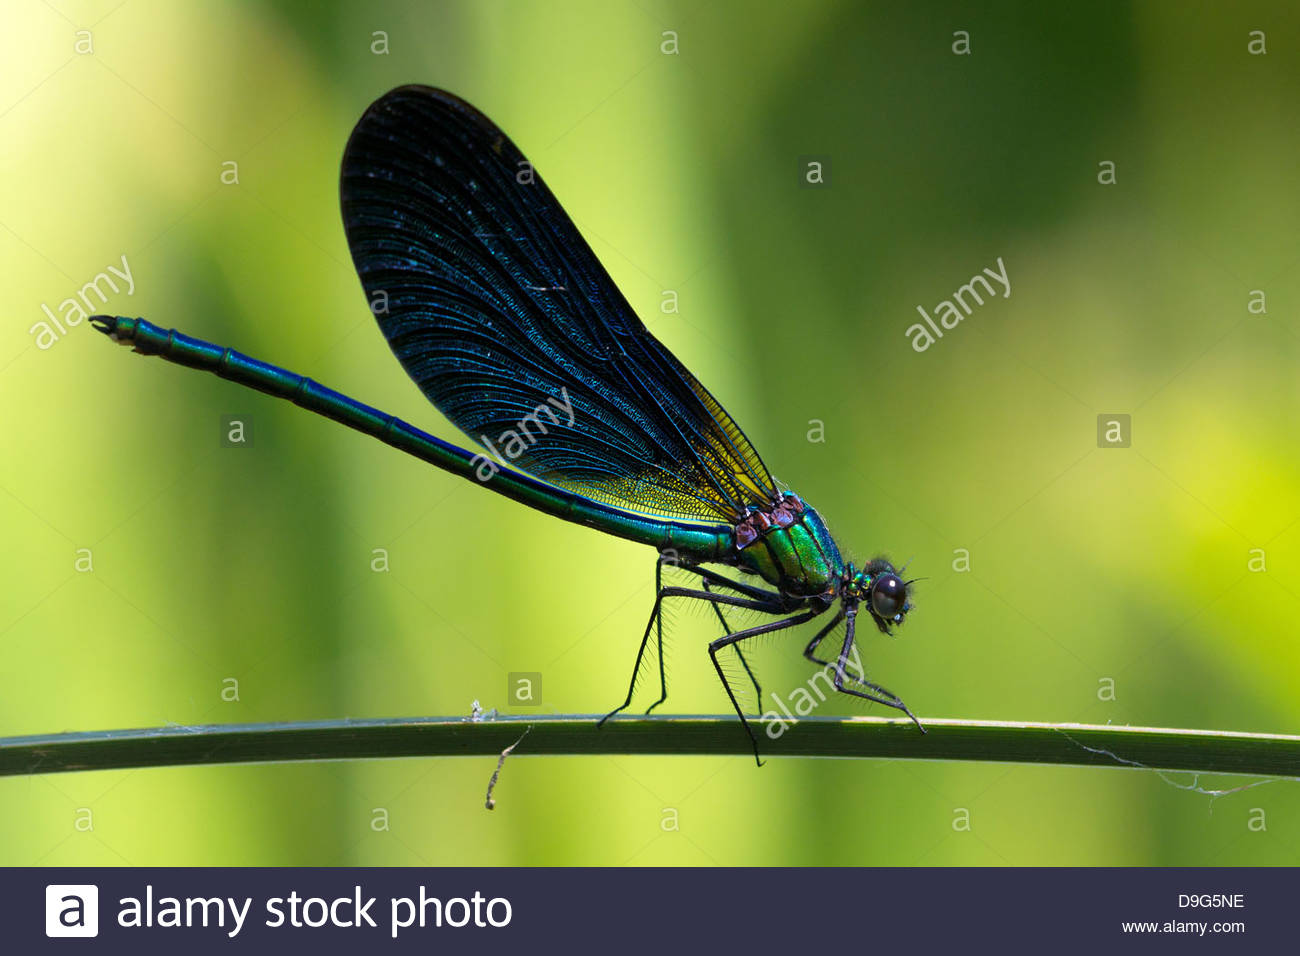 calopteryx-virgo-damselfly-known-as-the-